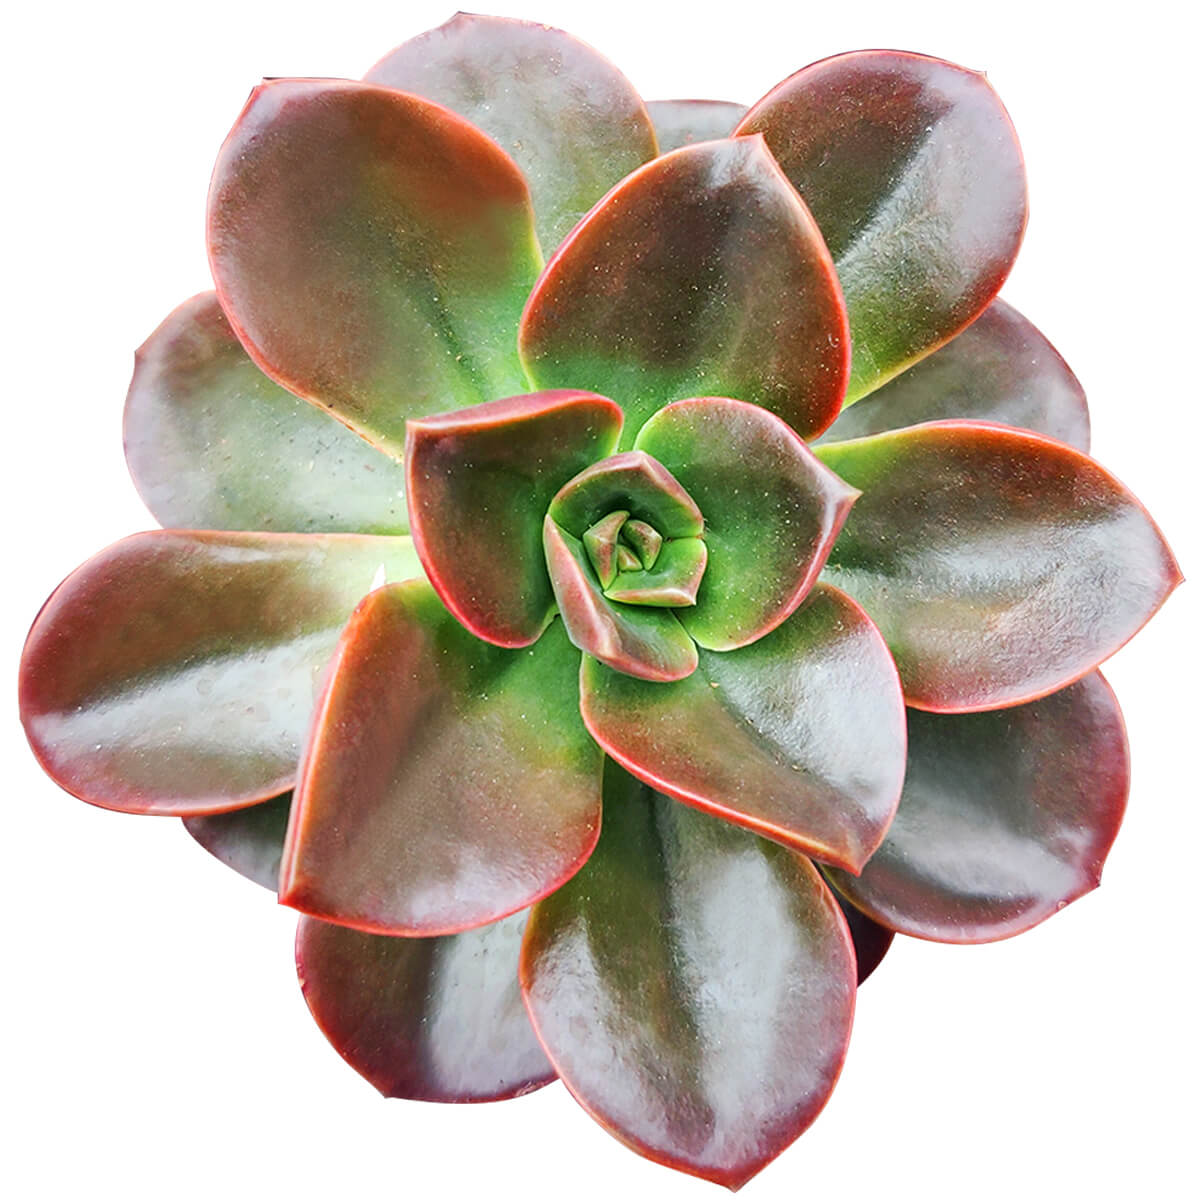 Echeveria Melaco for sale, how to grow succulents, succulents store in CA, succulent care, monthly succulents, Succulents shop near me, Succulents, succulent care guide, Rare succulents, Echeveria Melaco in California, How to grow Echeveria Melaco, How to care echeveria succulents for thanksgiving, Easter echeveria gift